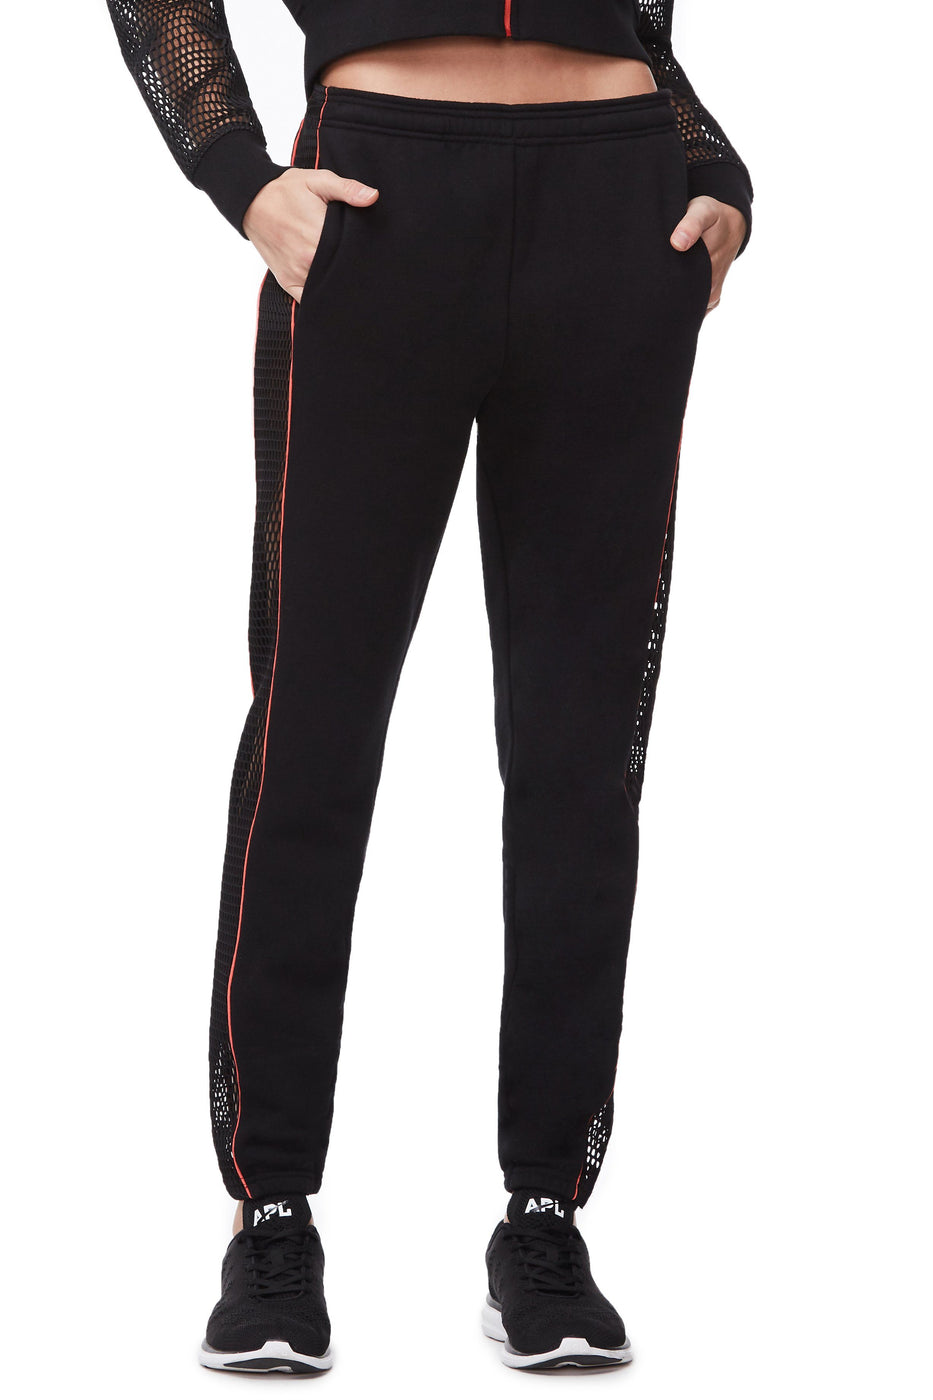 THE MESH SWEATPANT | BLACK001